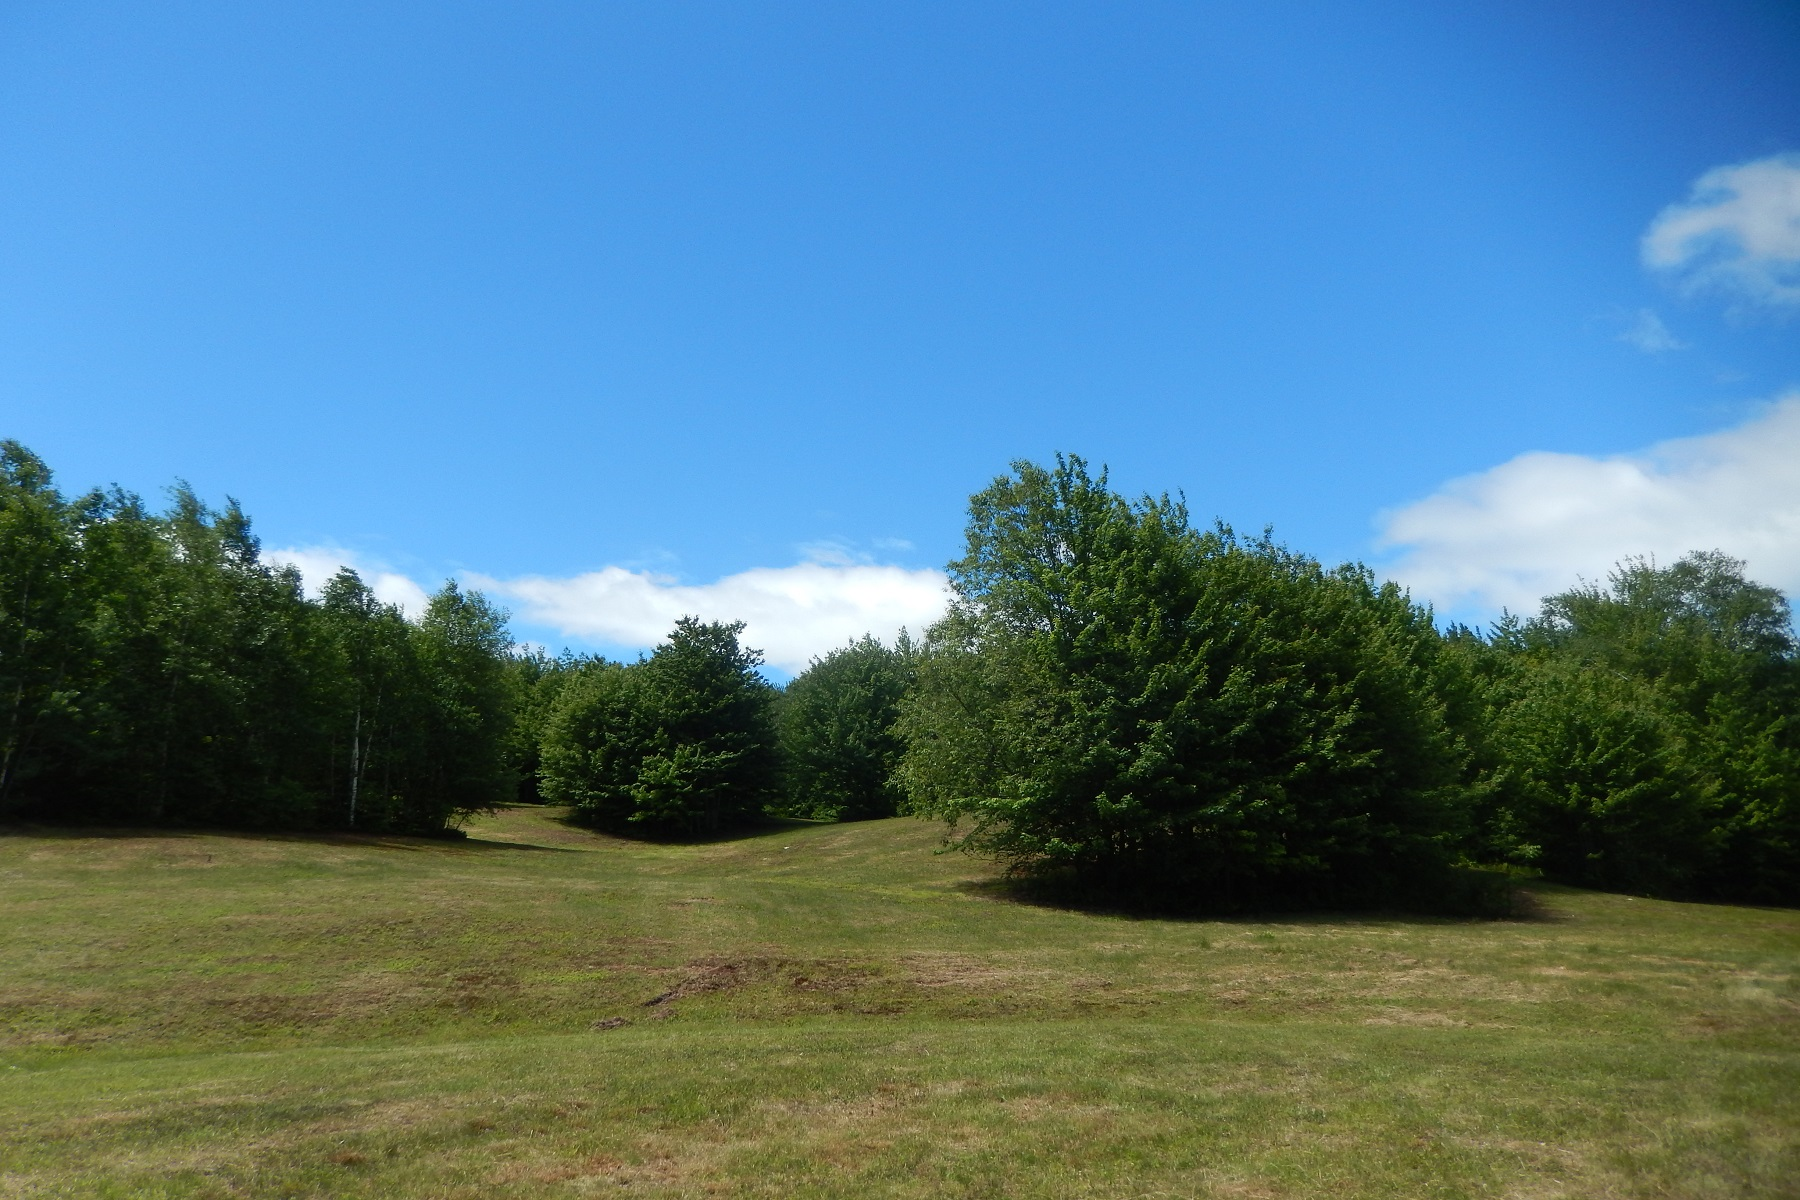 Terreno por un Venta en End of Road Location Trailview Rd Ludlow, Vermont, 05149 Estados Unidos